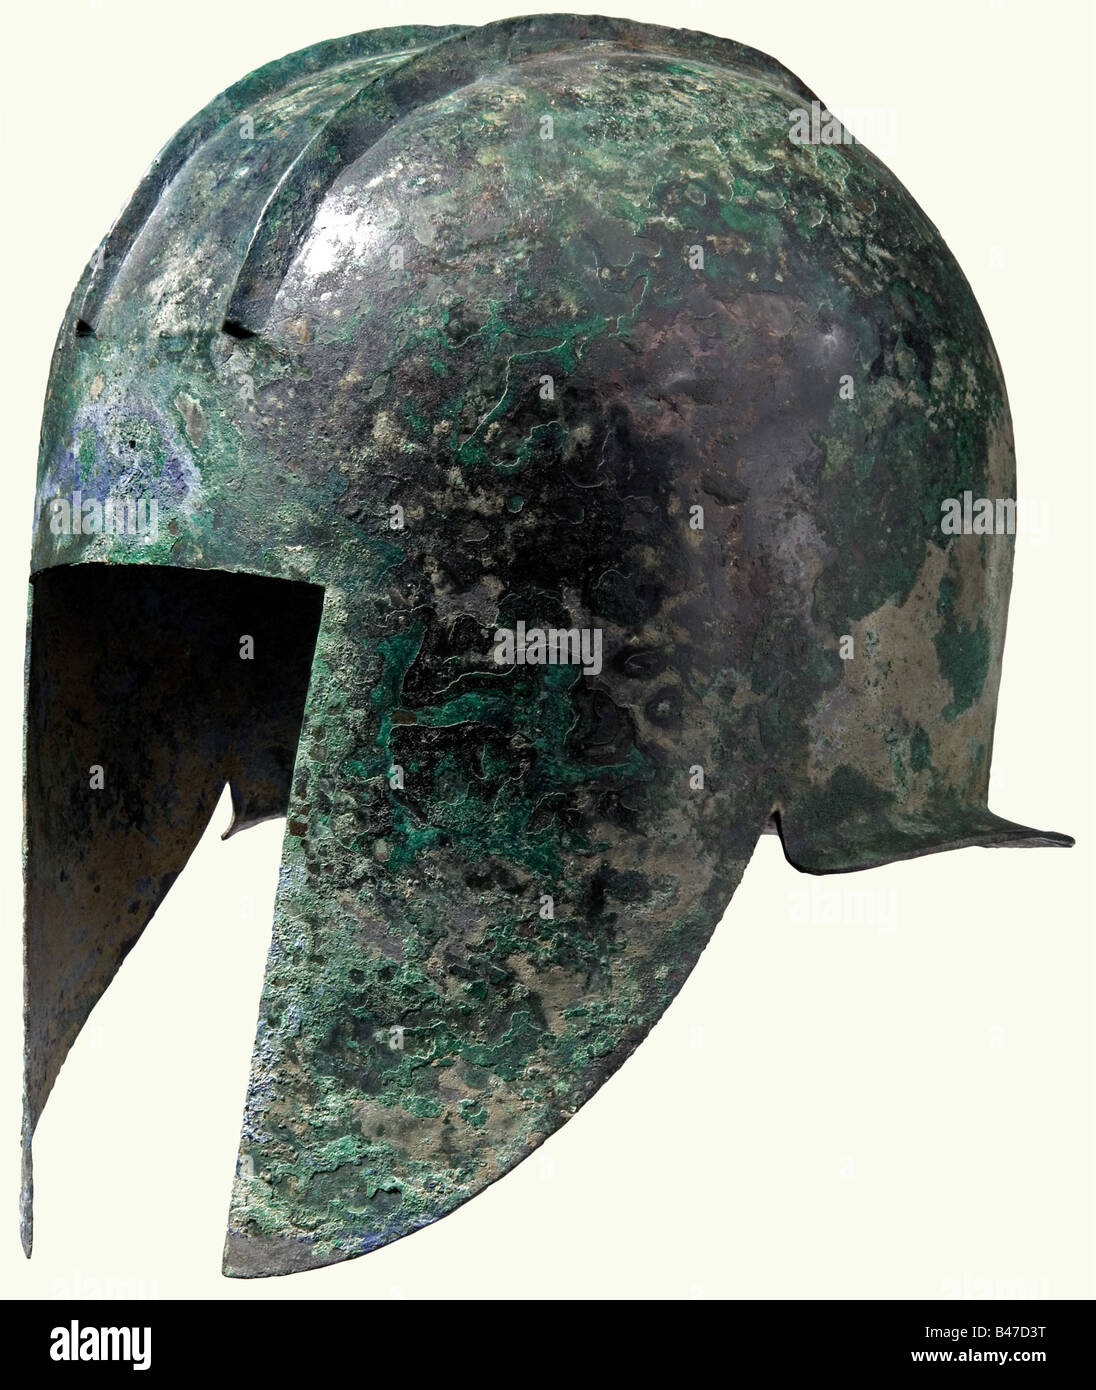 An Illyrian helmet, 5th century B.C. Bronze with greenish patina. High embossed skull with position for the crest - Stock Image